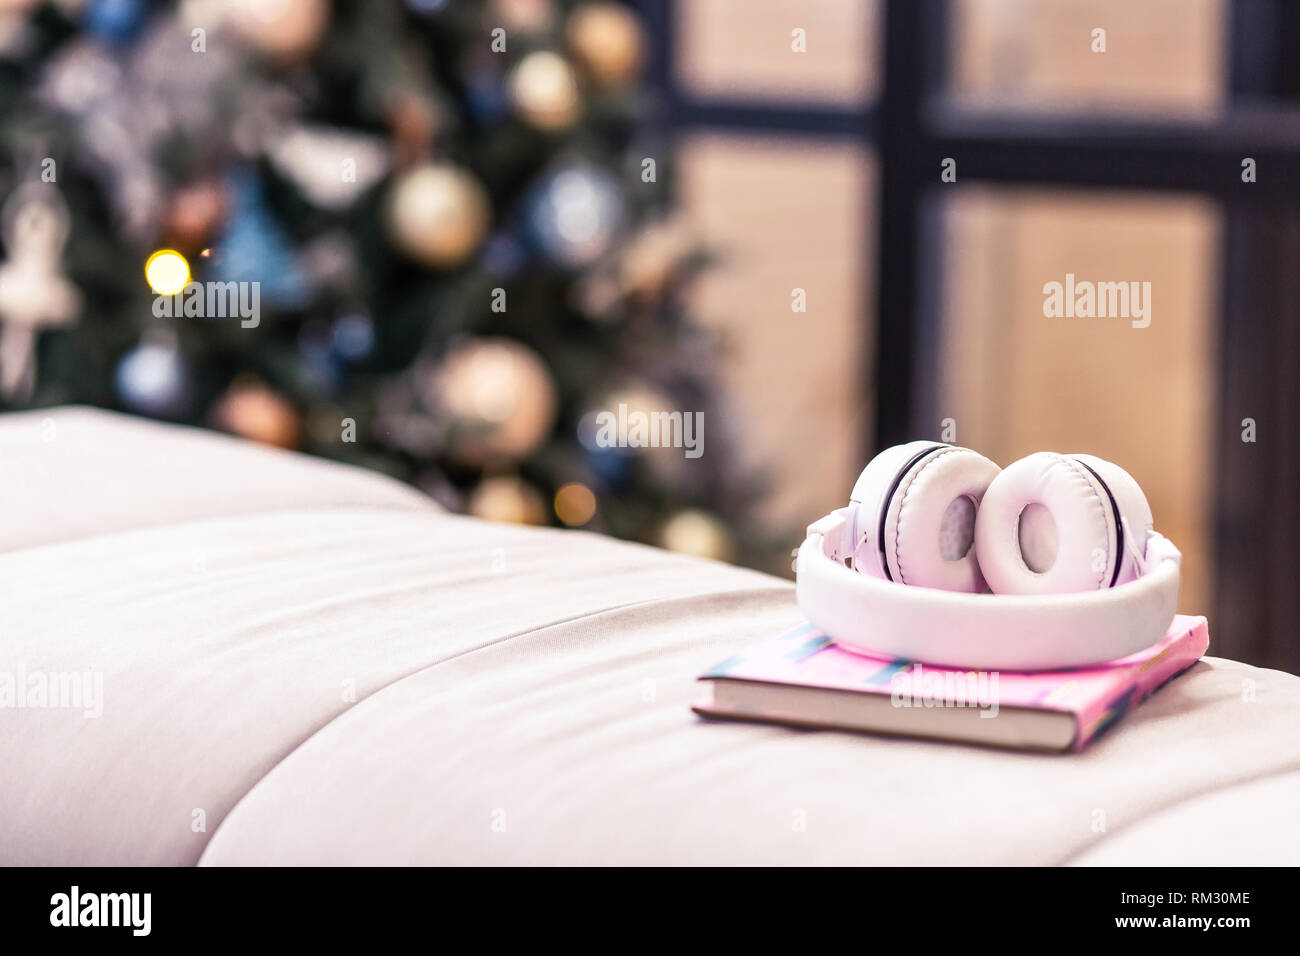 Pink earphones and a sketch-book laying on the pinky sofa in the room - Stock Image